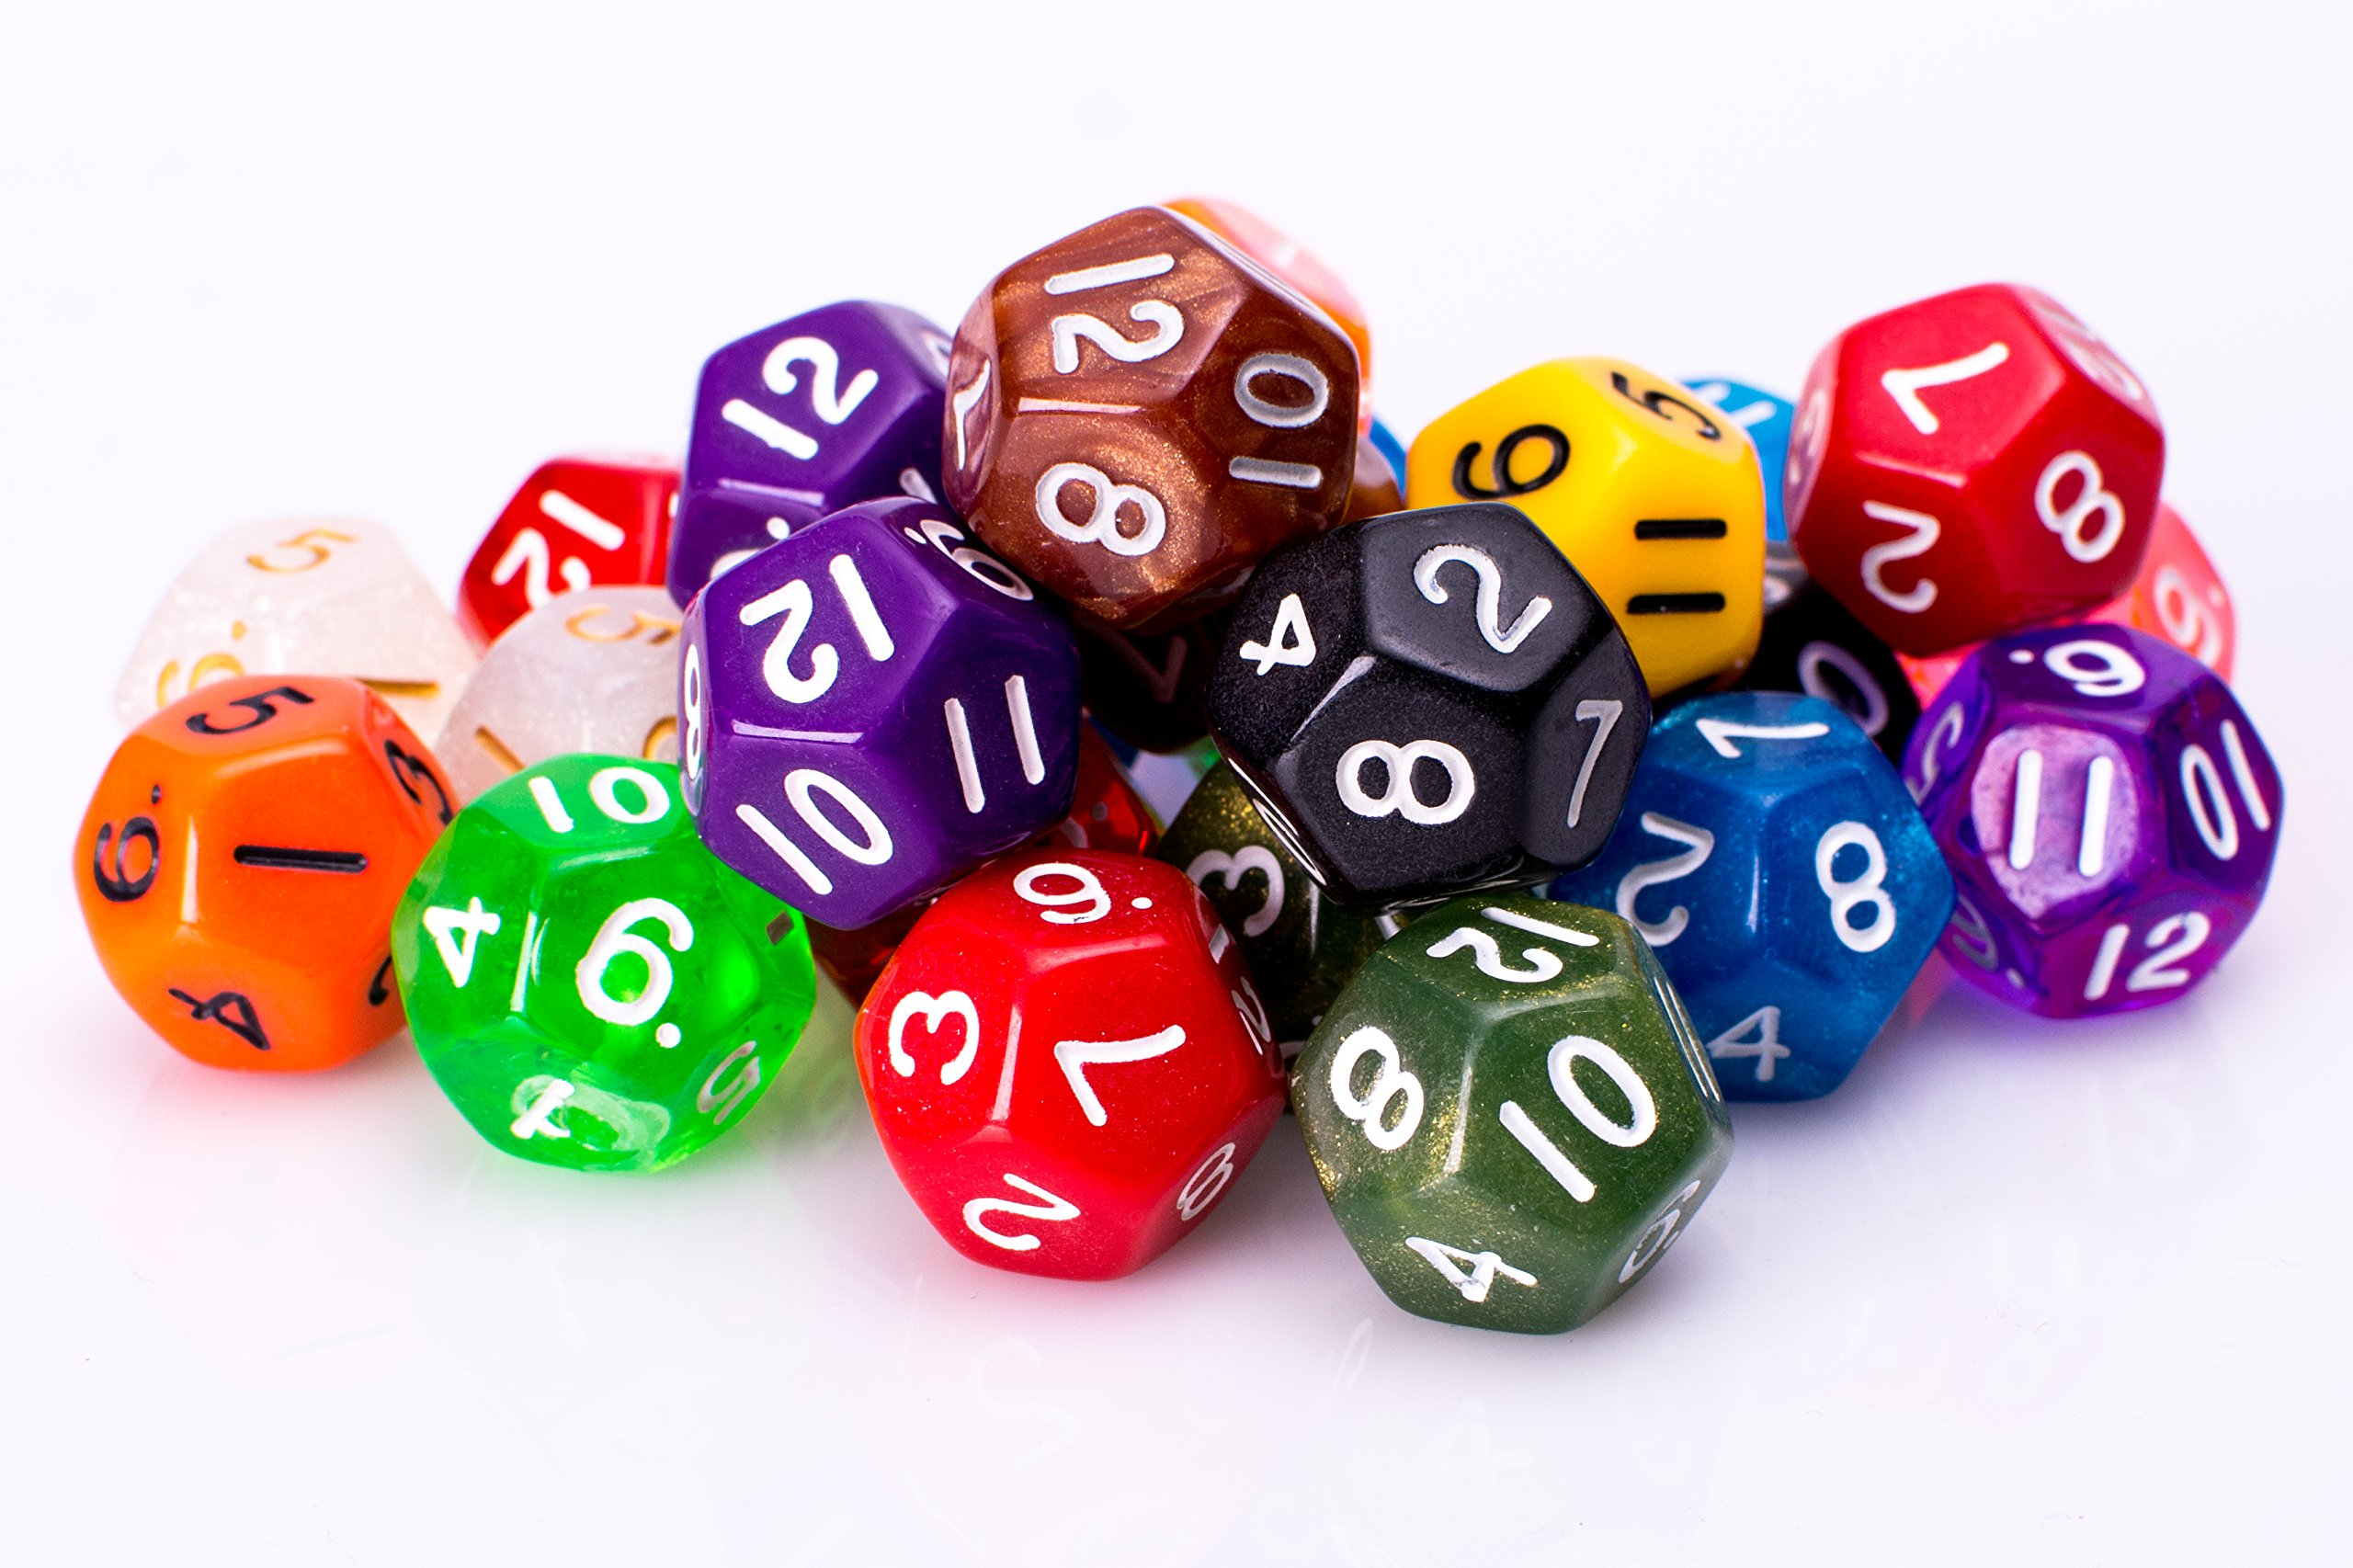 25 Count Assorted Pack of 12 Sided Dice - Multi Colored Assortment of D12 Polyhedral Dice by Easy Roller Dice Co.